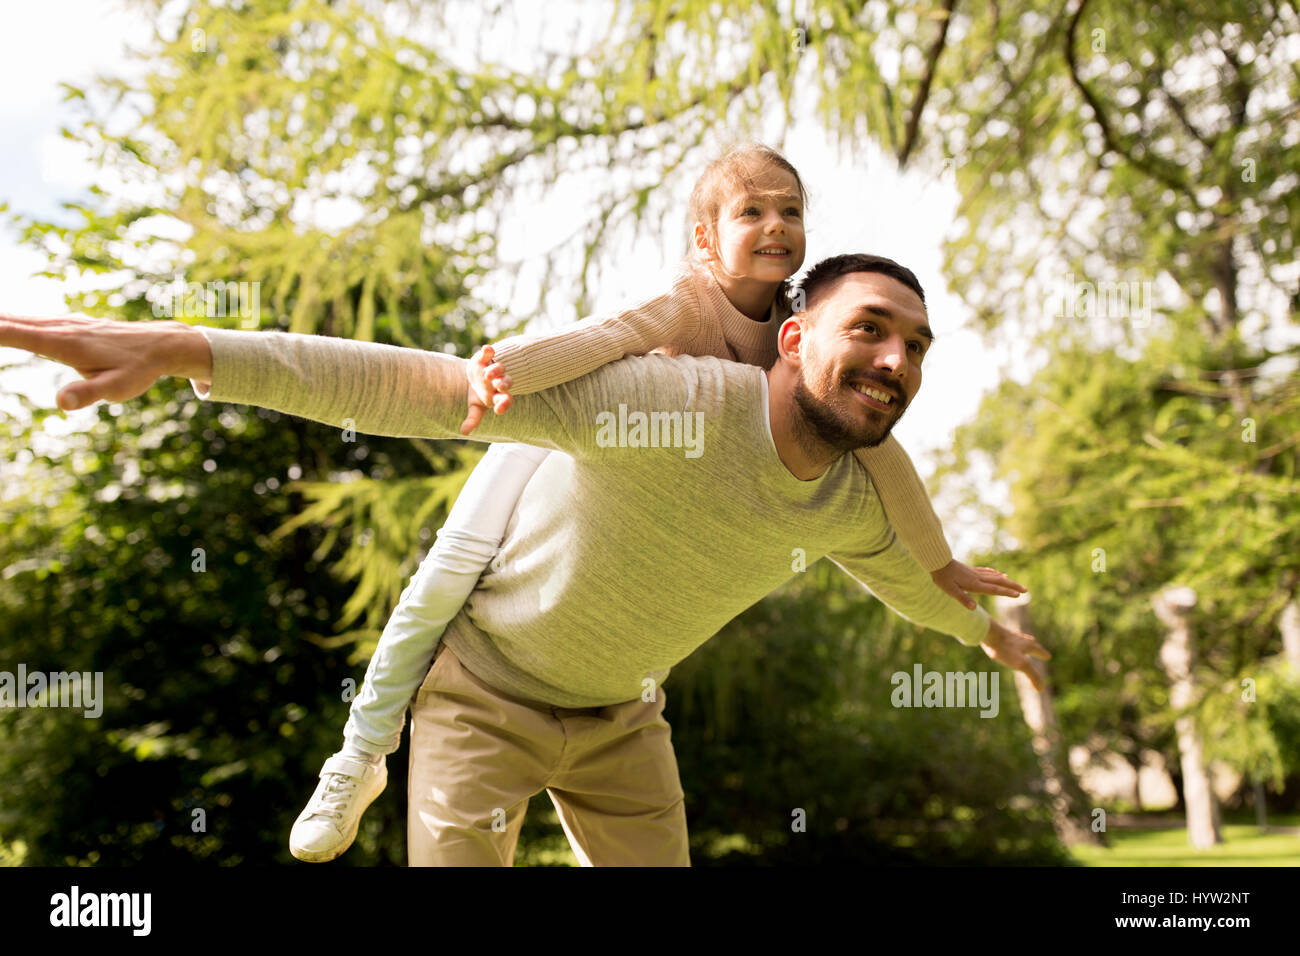 Happy Family in summer park Photo Stock